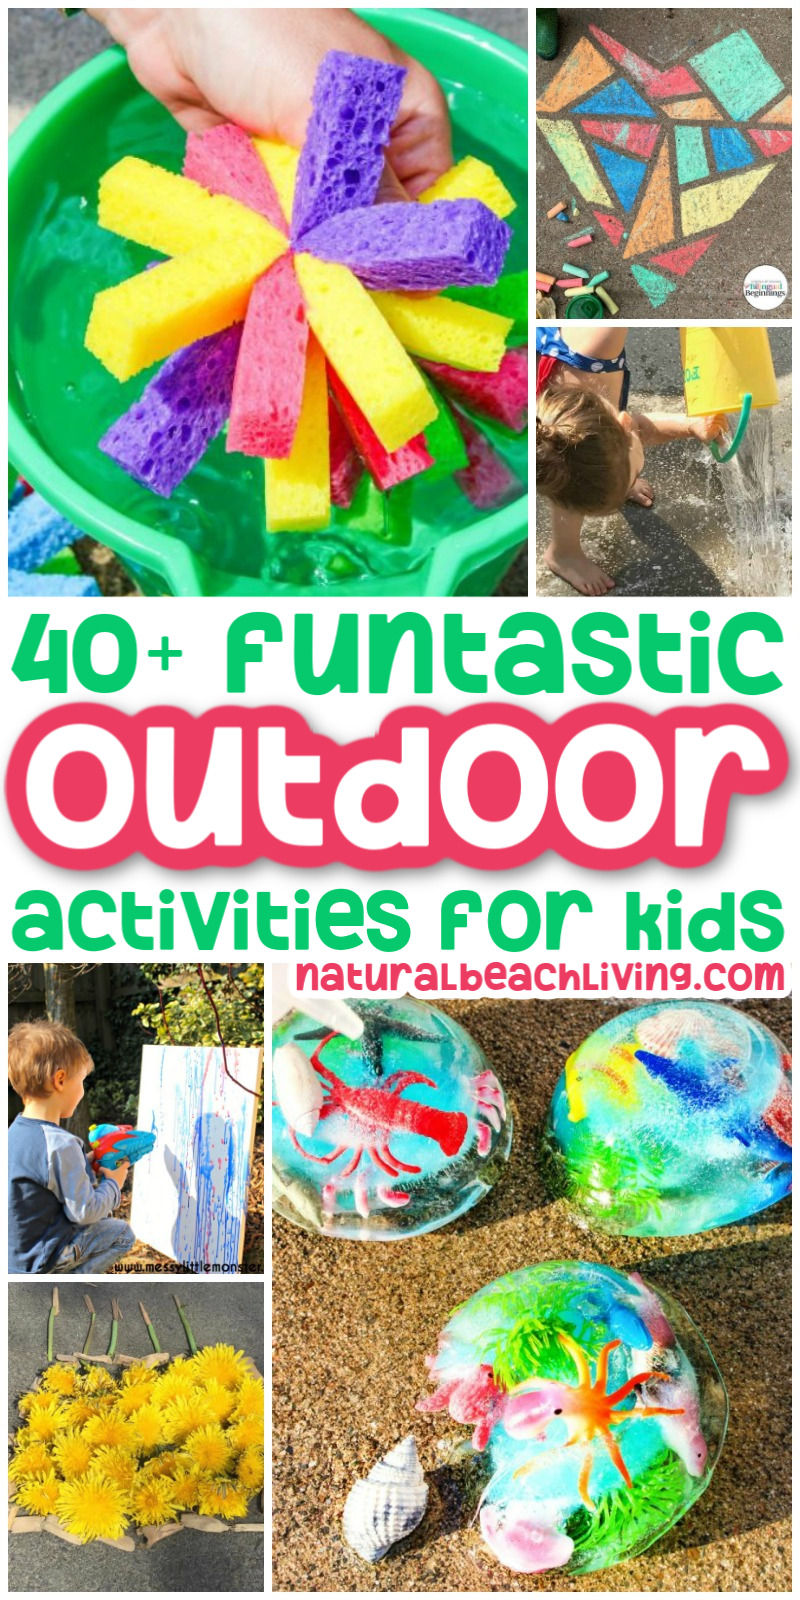 Help your kids unplug and get moving with more than 40 outdoor activities for kids. Many of these activities are cheap or free, so you don't have to break the bank to keep your kids entertained. Getting outdoors is also an excellent way to spend time together as a family. Spring Activities and Summer Activities Kids will love.